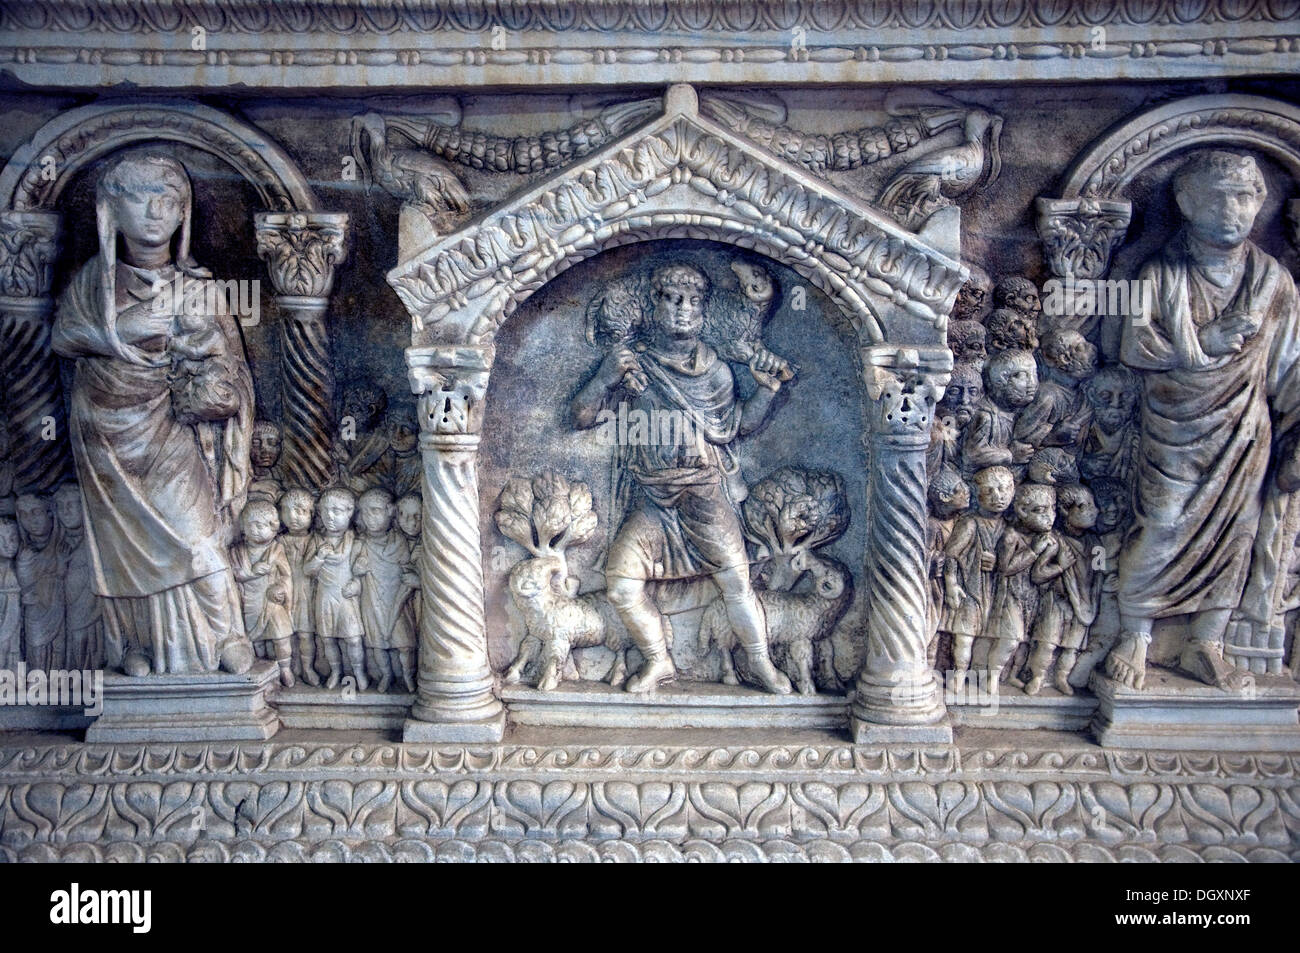 A carved sarcophagus, The Good Shepherd, in a rich largely Roman collection in the Archaeological Museum in Split, - Stock Image